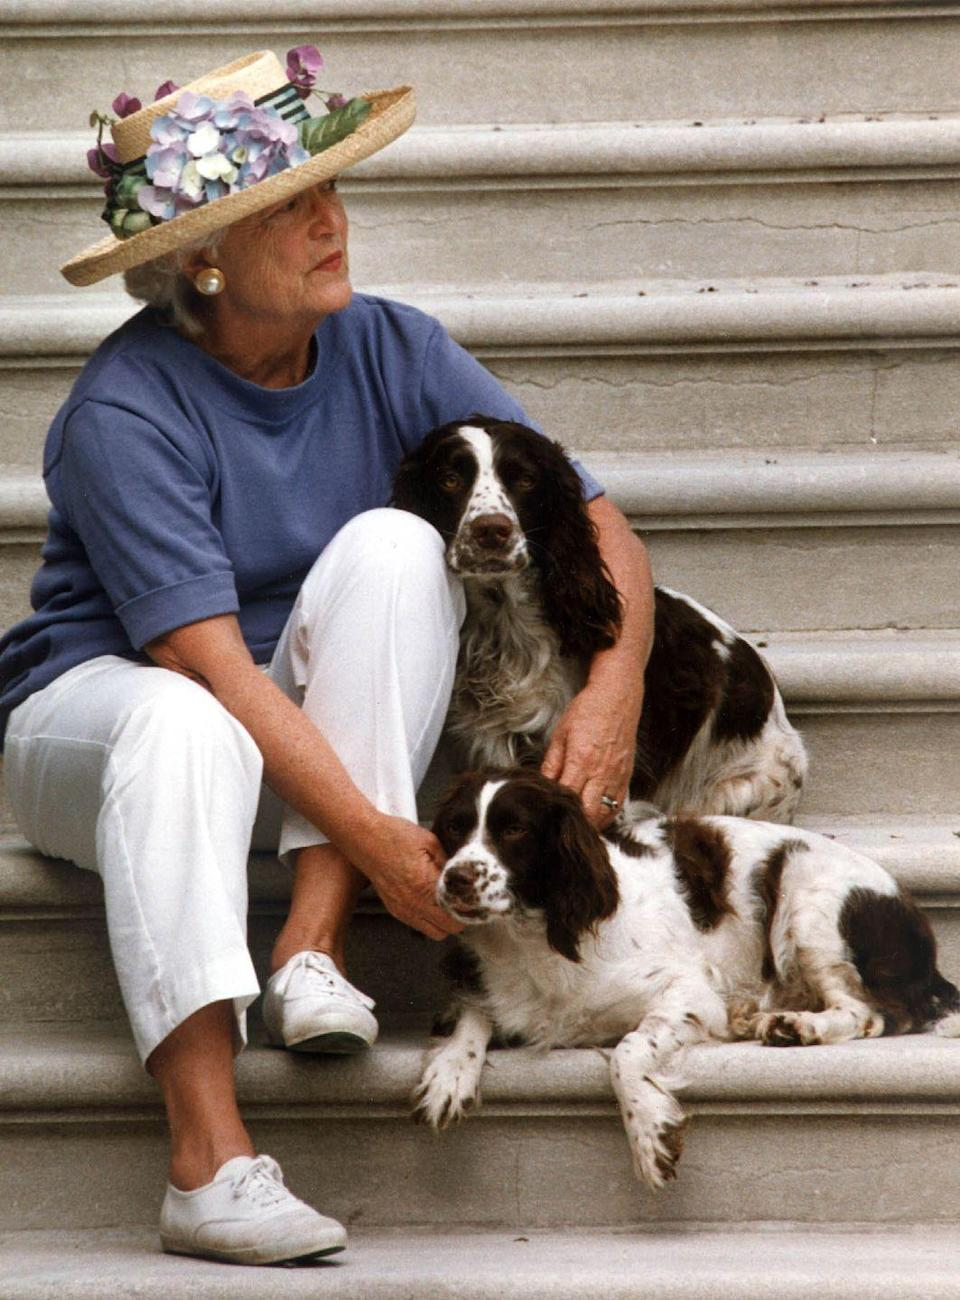 "<p>Even off-duty, Barbara Bush was never seen without her iconic red lipstick or a shade a blue. She <a href=""http://www.firstladies.org/blog/what-first-ladies-wore-barbara-bush-hillary-clinton-part-4/"" rel=""nofollow noopener"" target=""_blank"" data-ylk=""slk:always strived"" class=""link rapid-noclick-resp"">always strived</a> to wear red, white, and blue during her time as a former first lady. This outfit definitely checks all of those boxes.</p>"